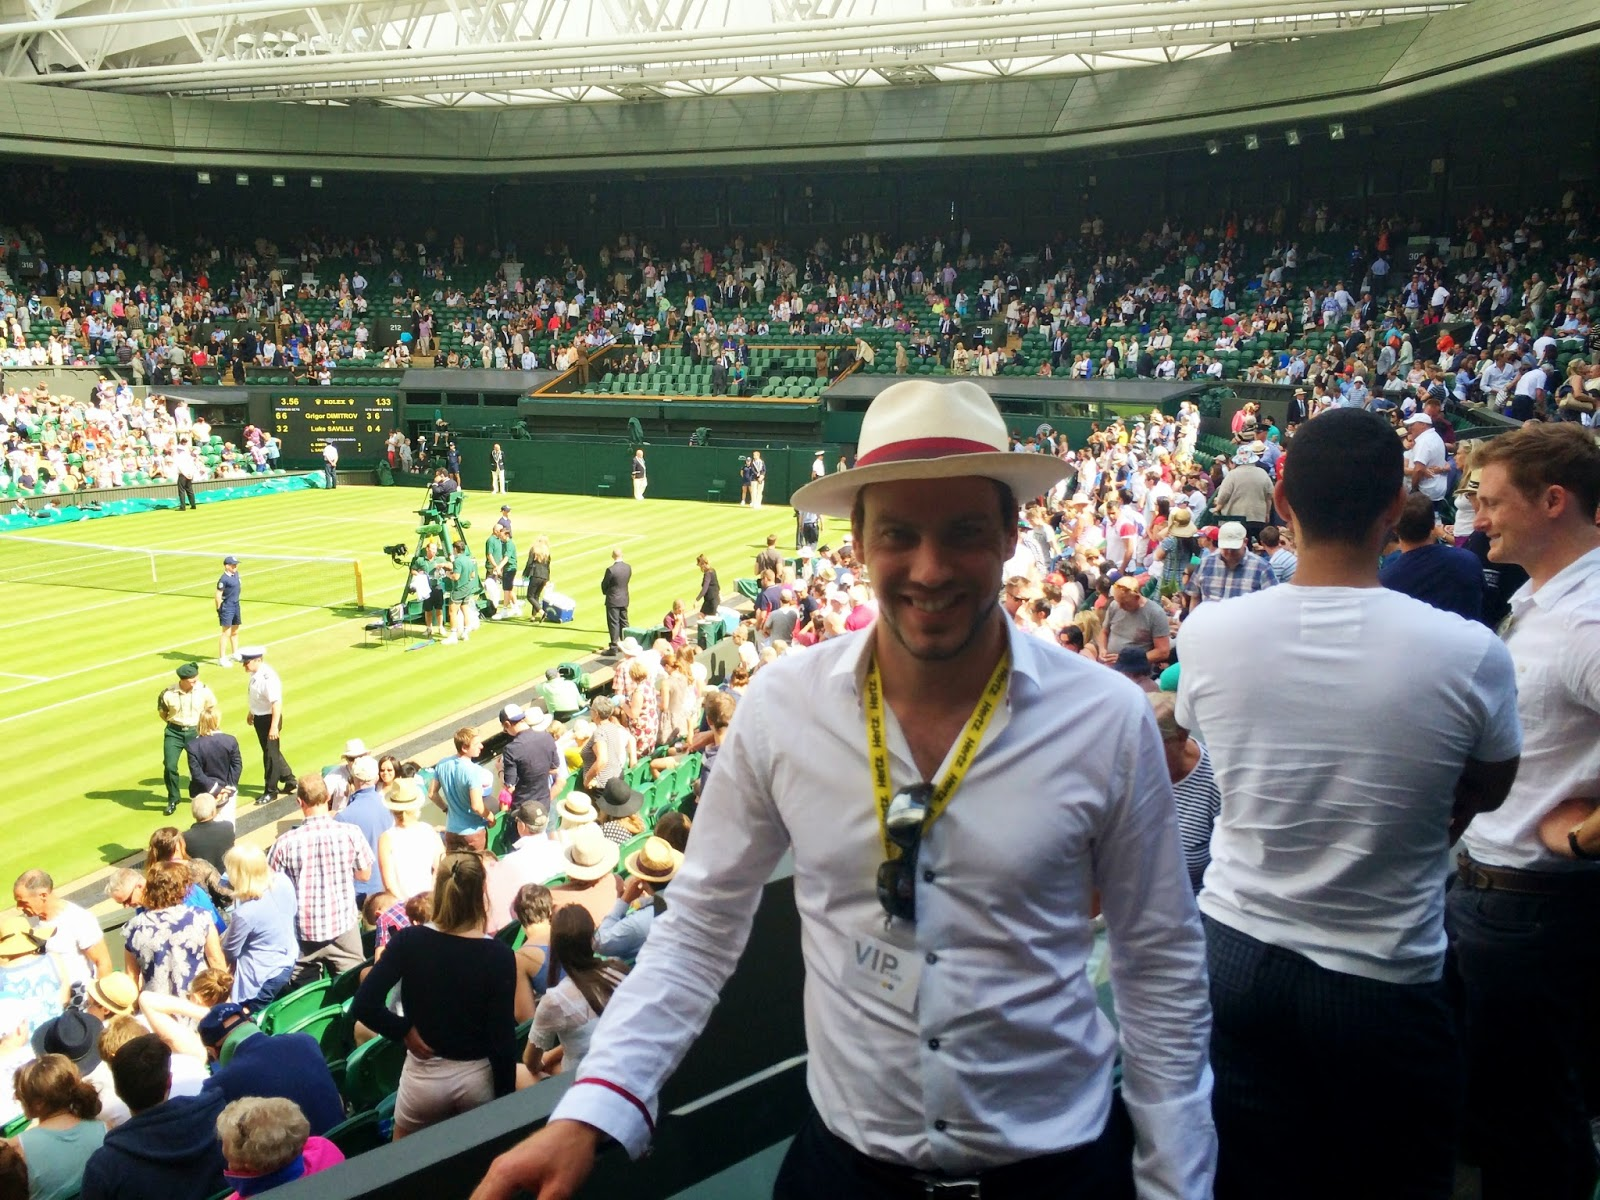 Simon on Centre Court at Wimbledon, 2014